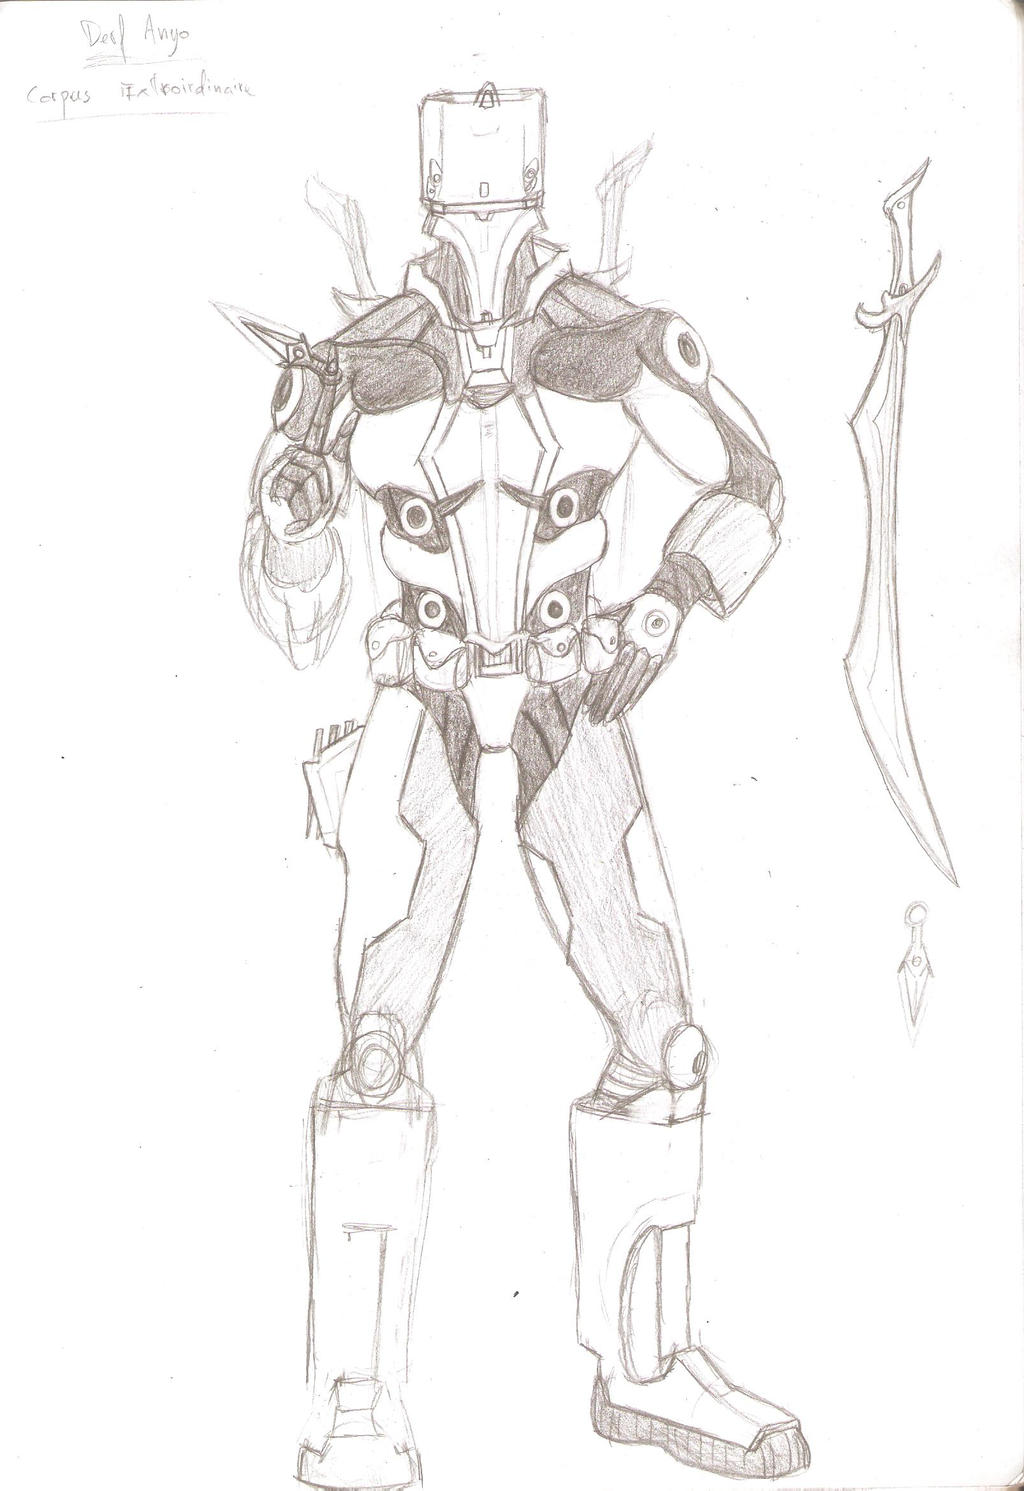 Warframe concept - Derf Anyo scrapped by Sil-Pencil